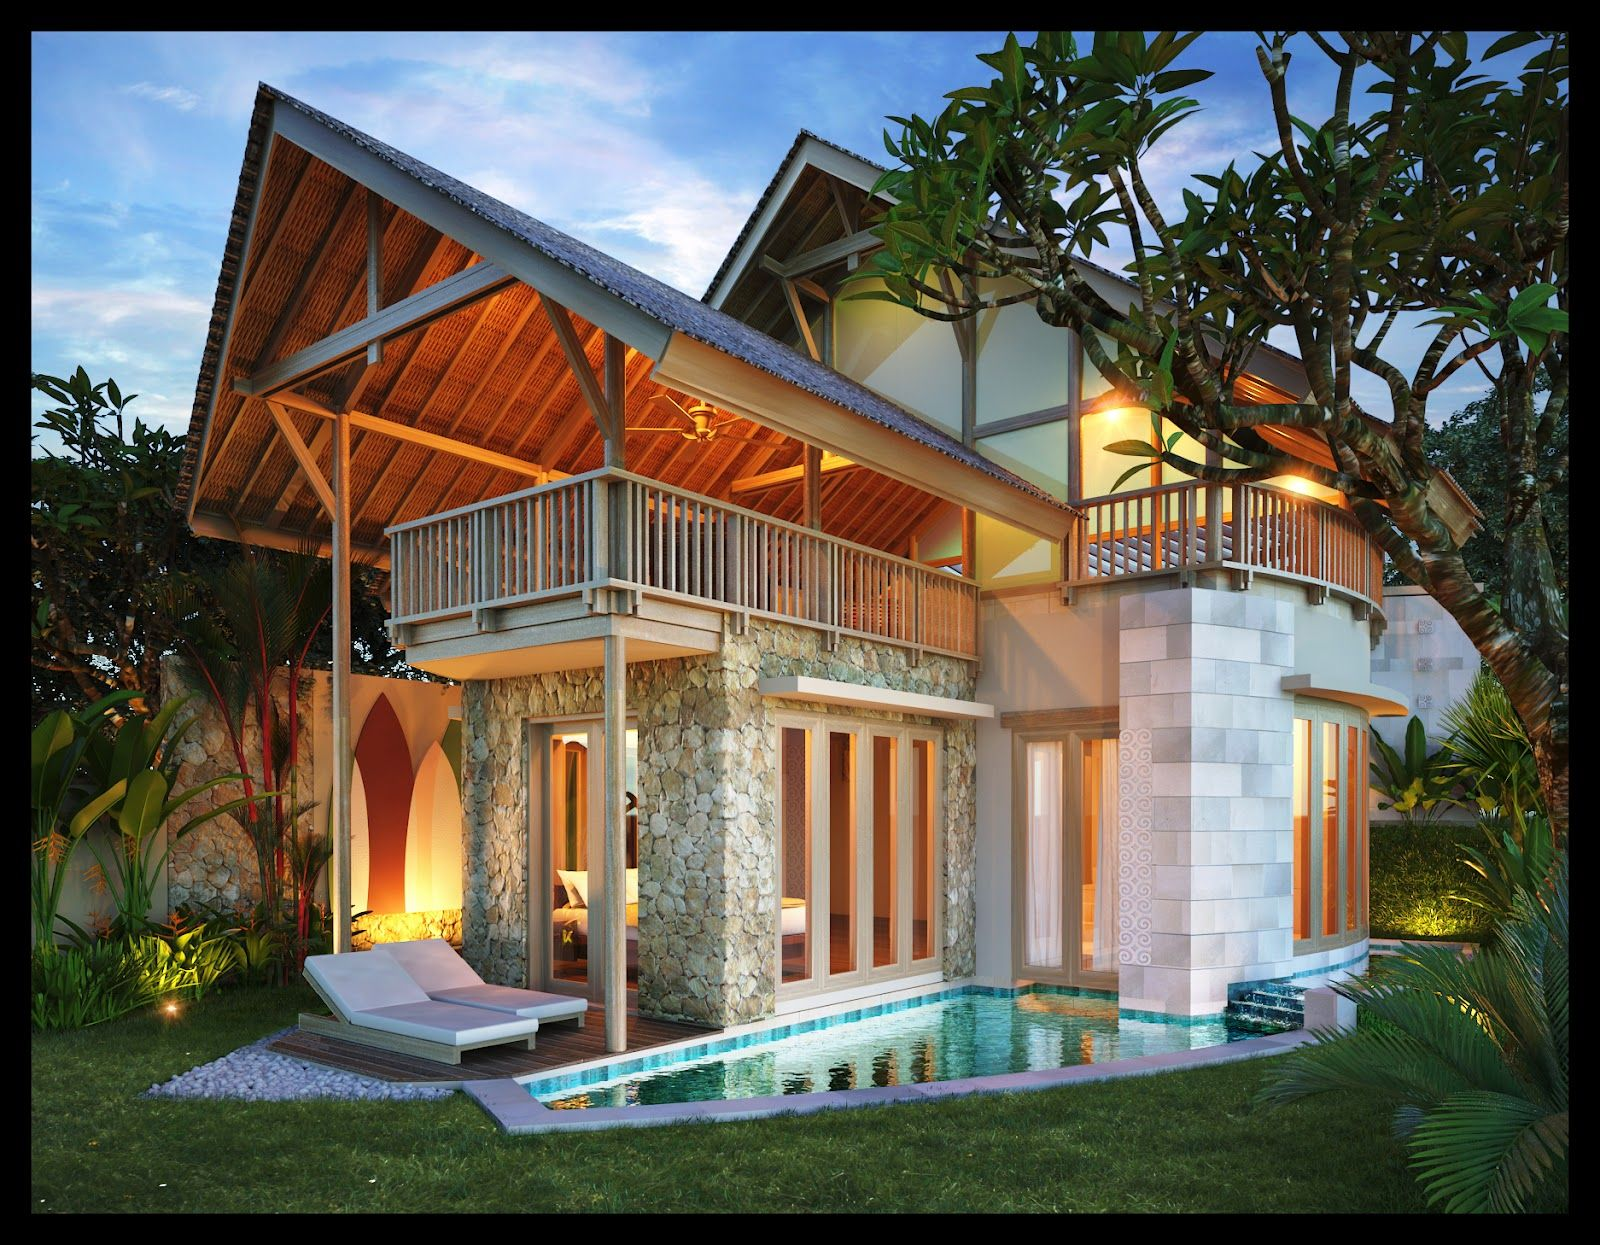 Balinese Houses Designs Home Design Ideas Inexpensive House Plans